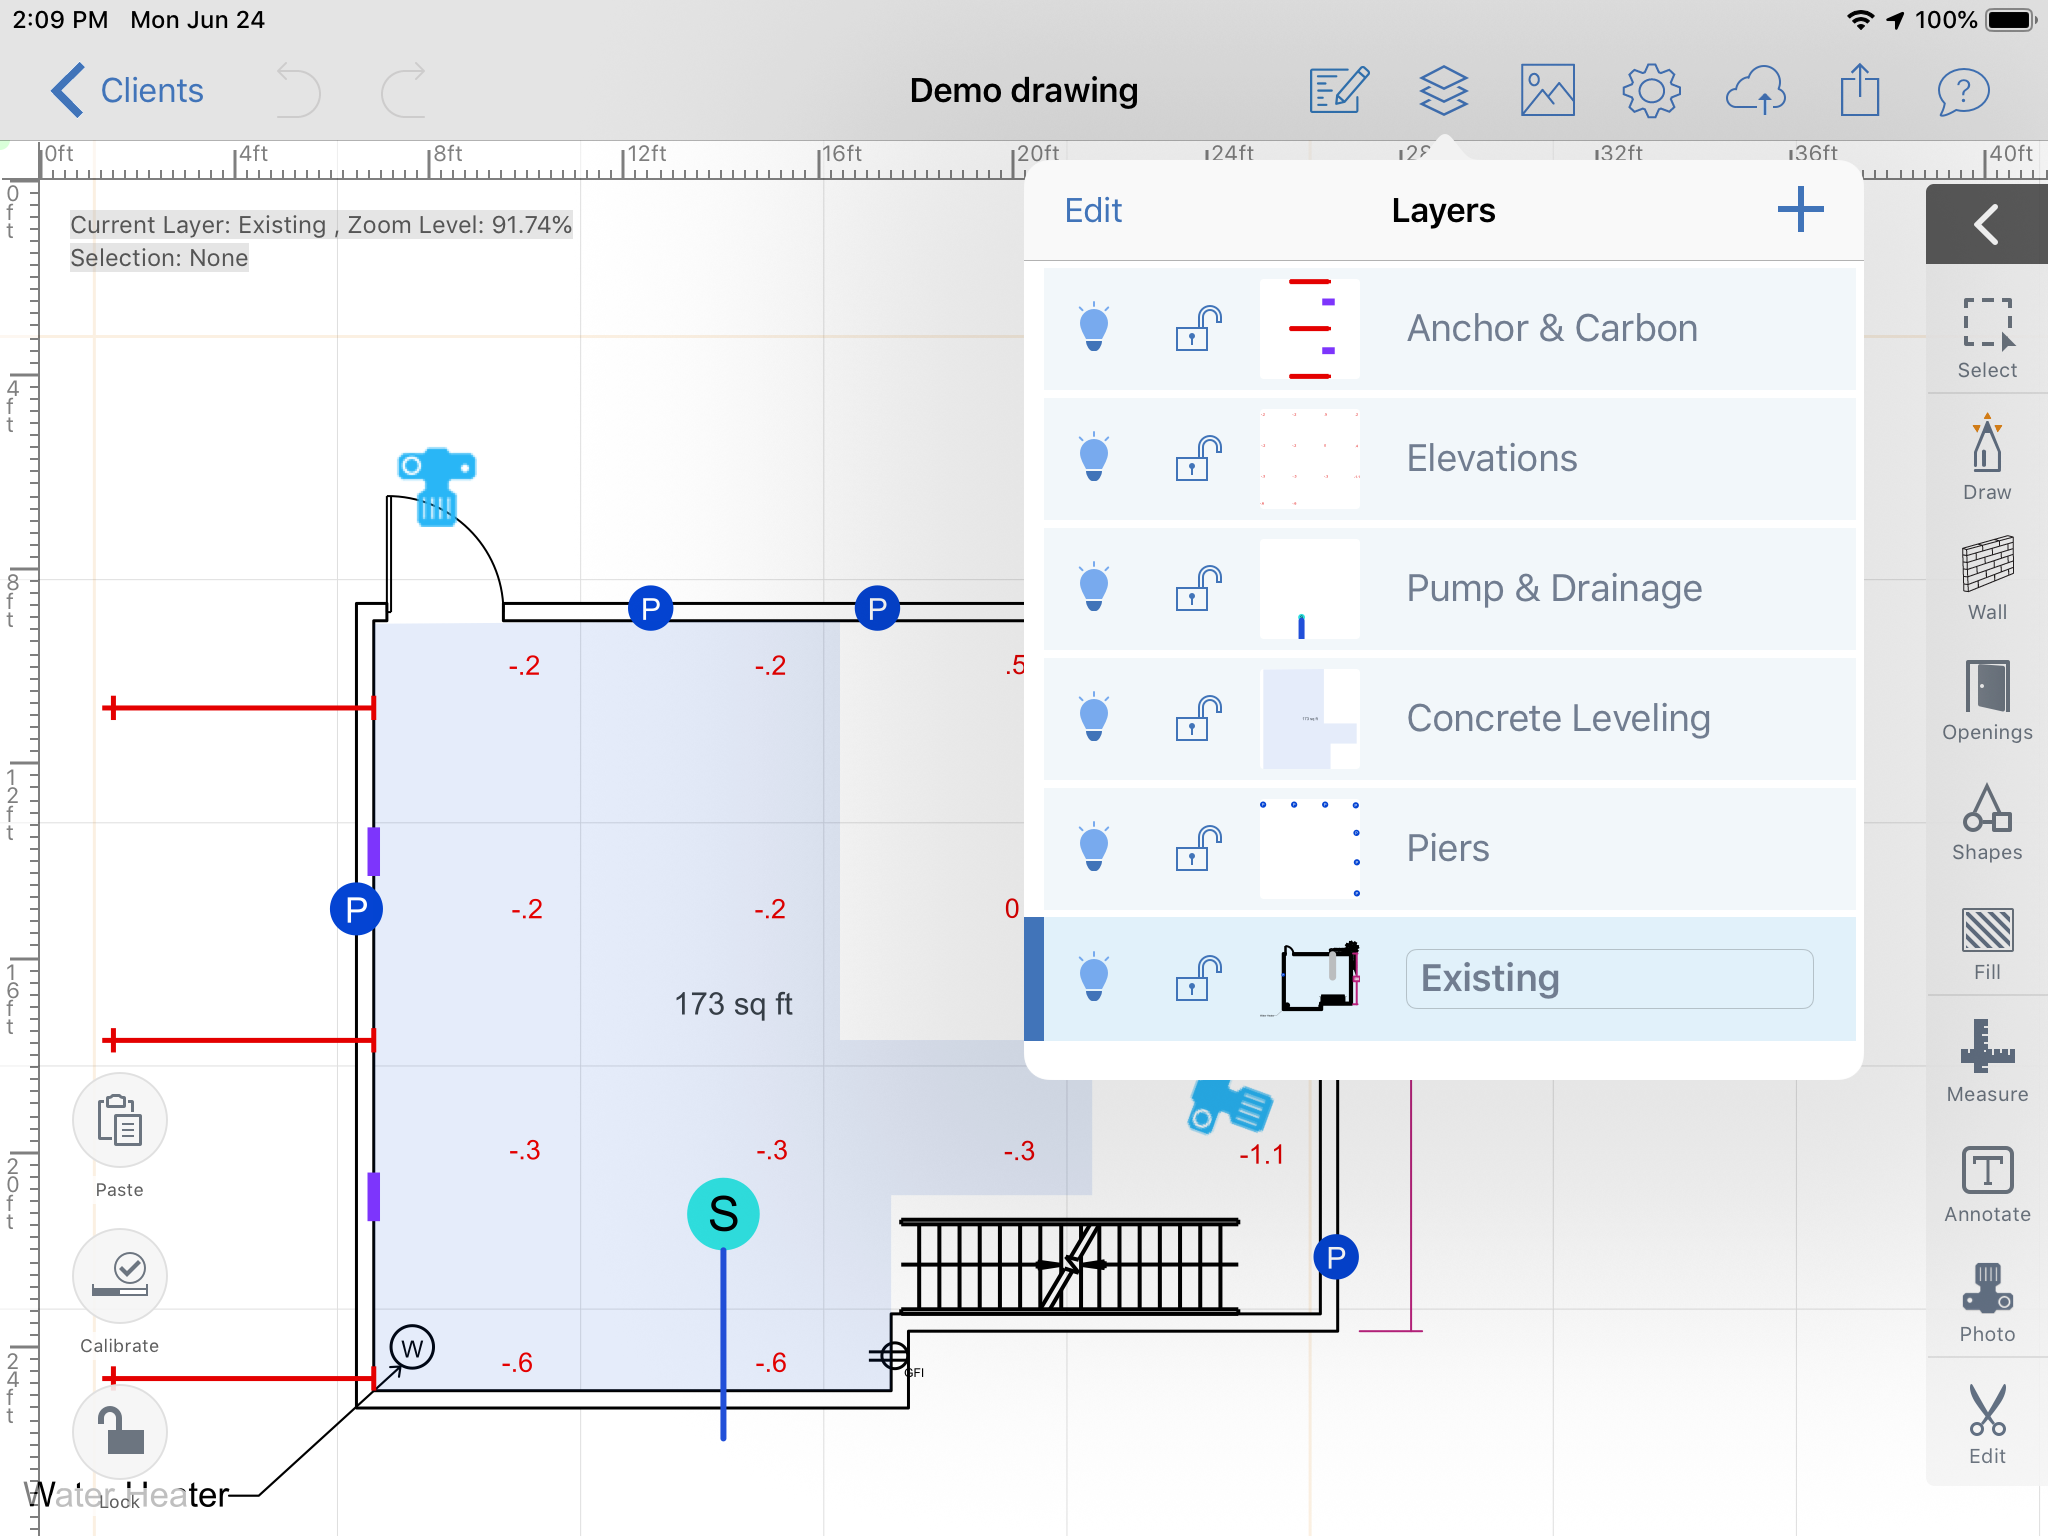 ArcSite Software - Create Professional Drawings